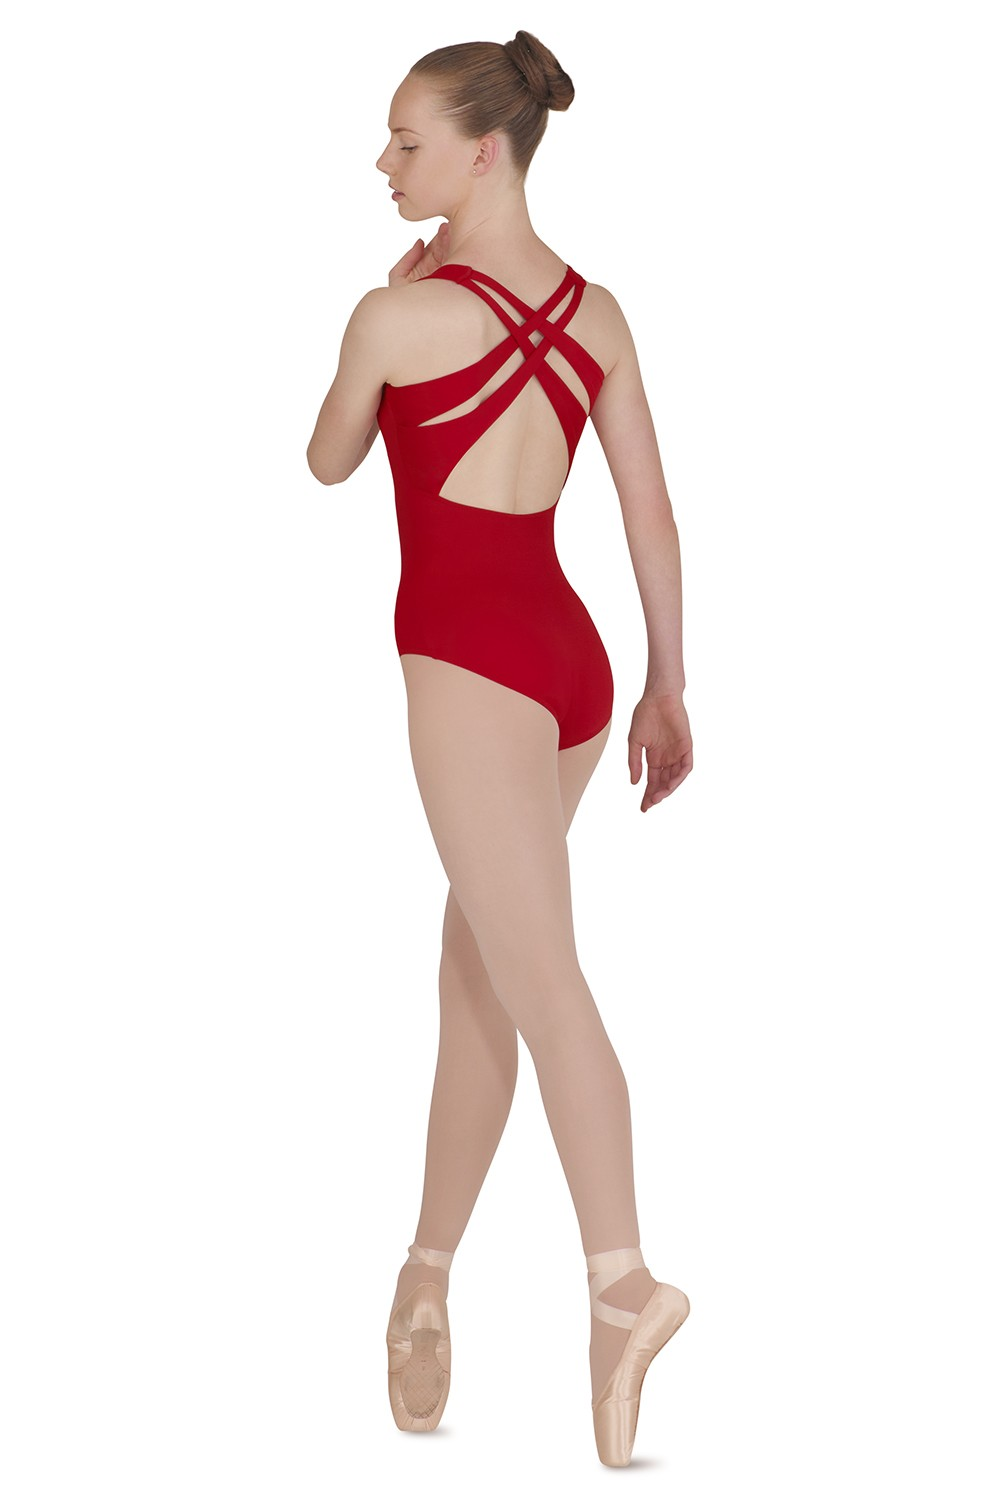 Dorado Women's Dance Leotards